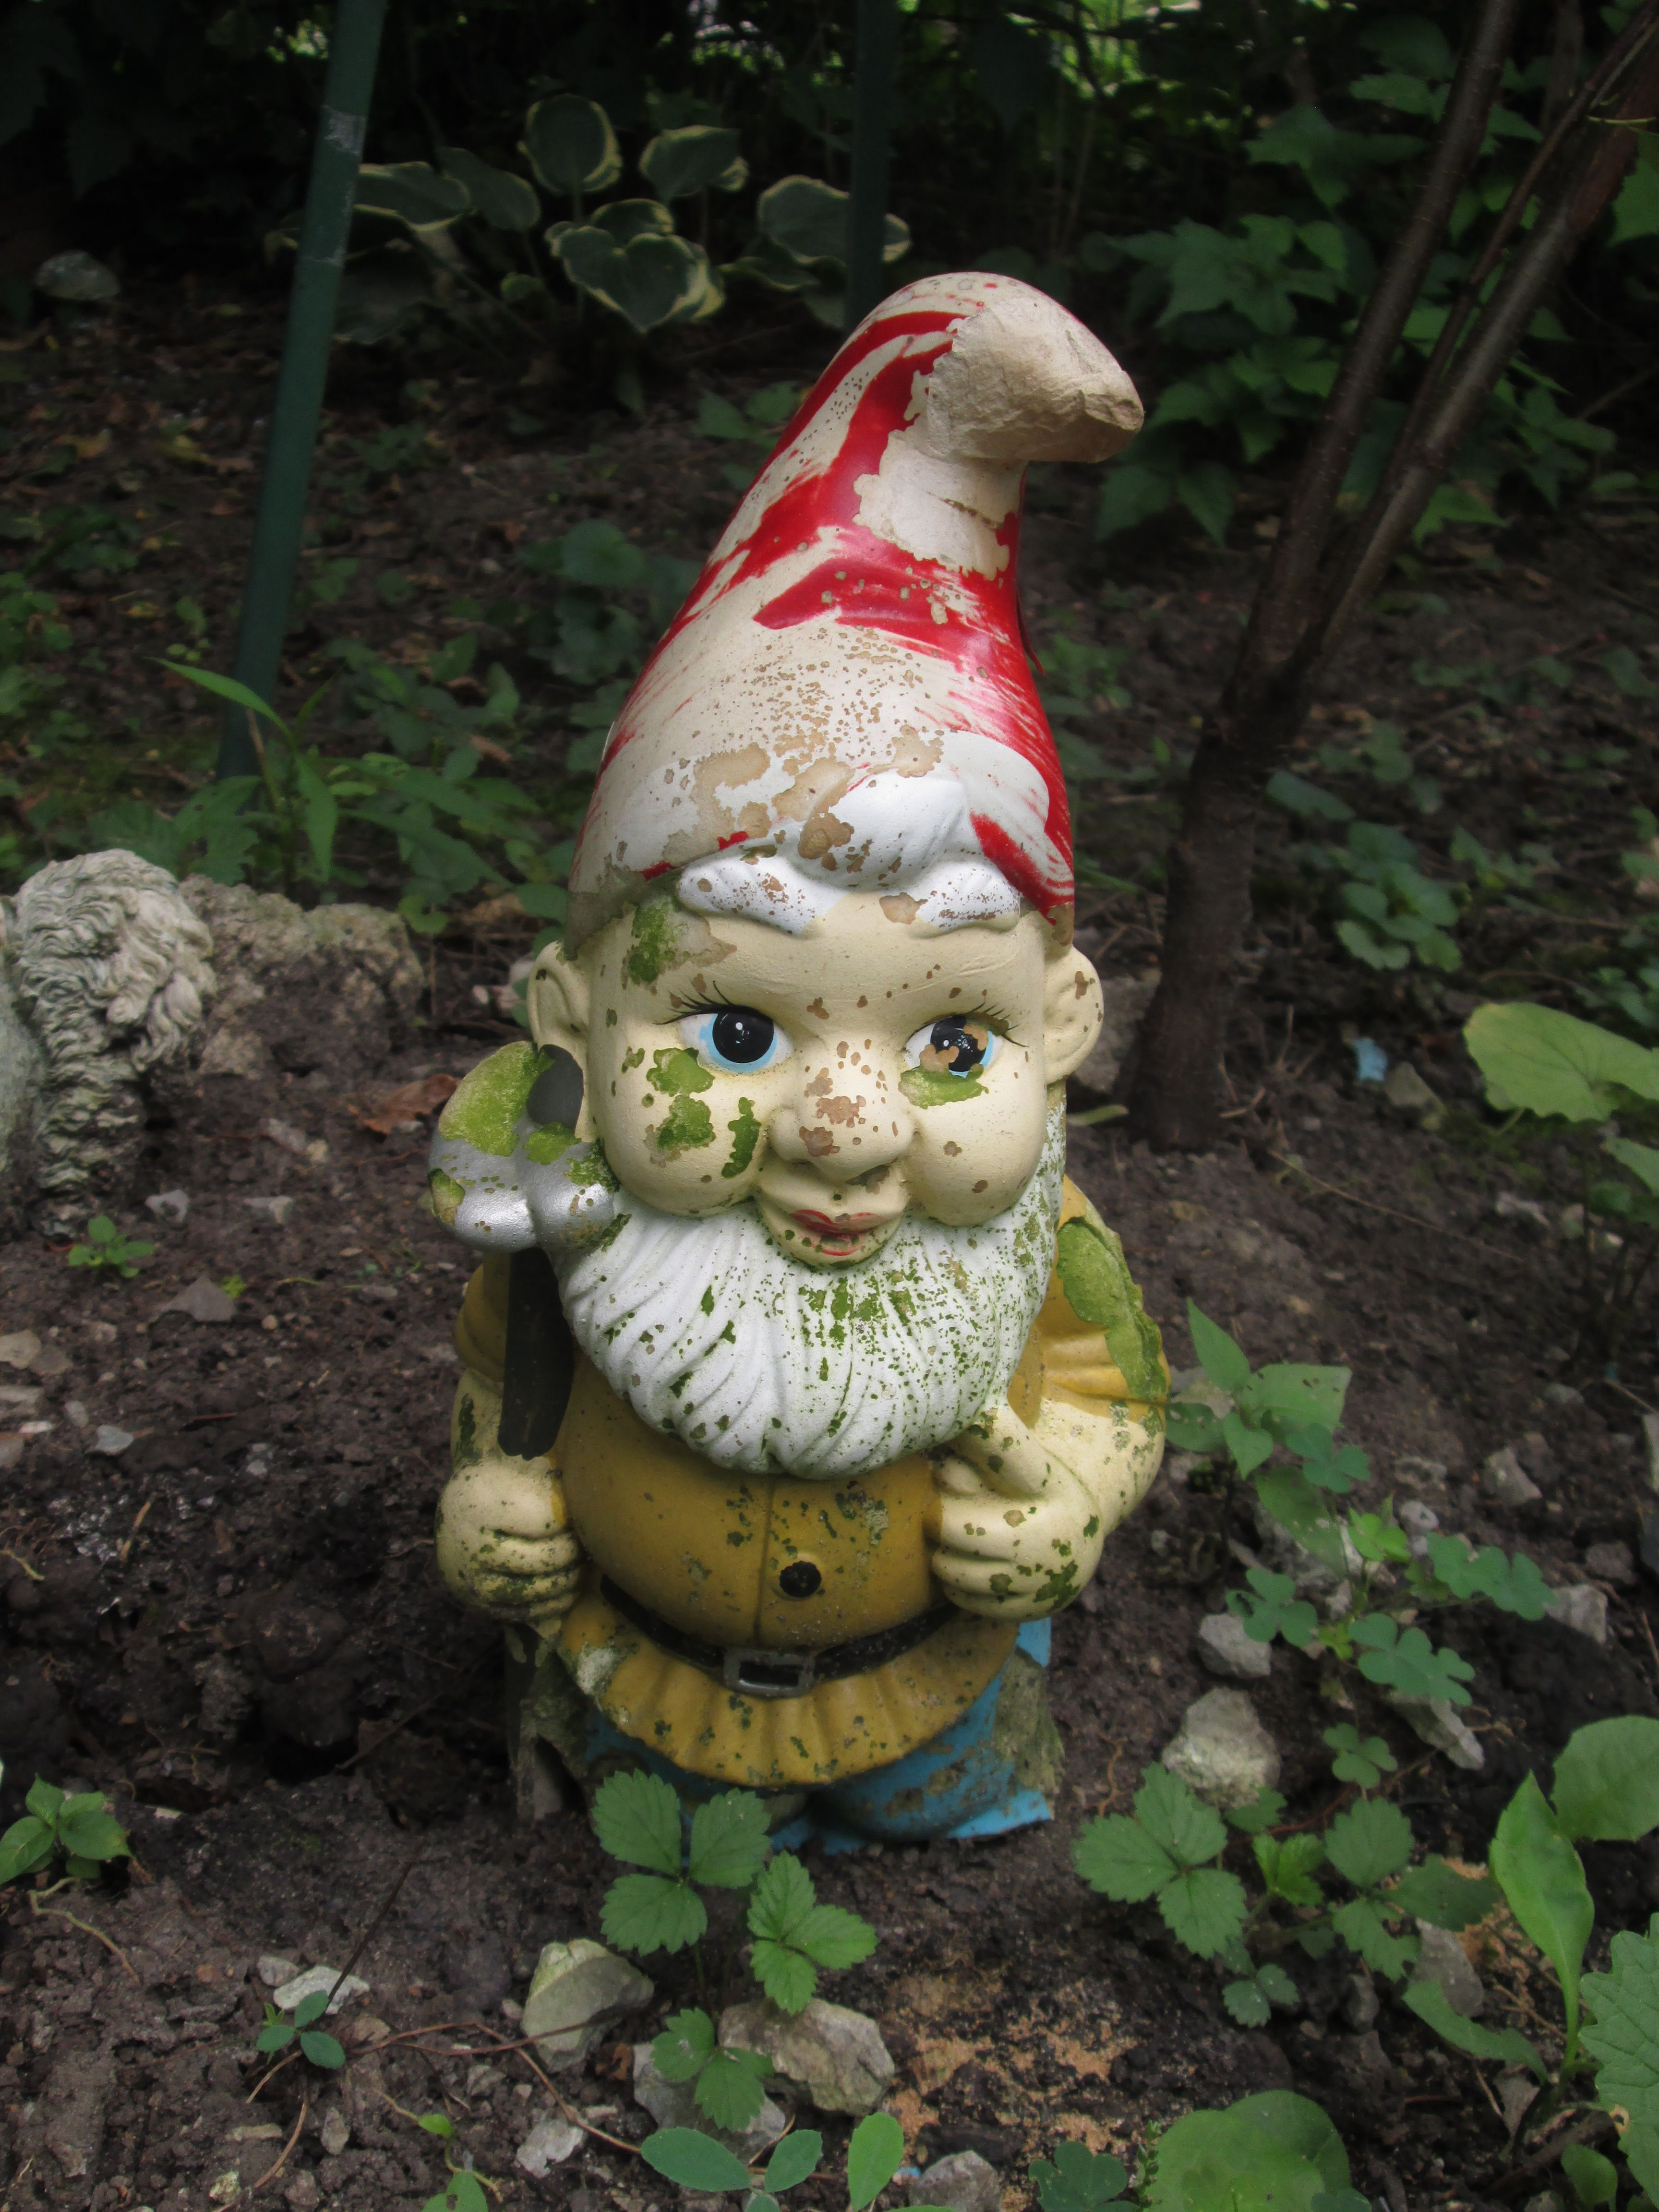 Gnome In Garden: My Photography